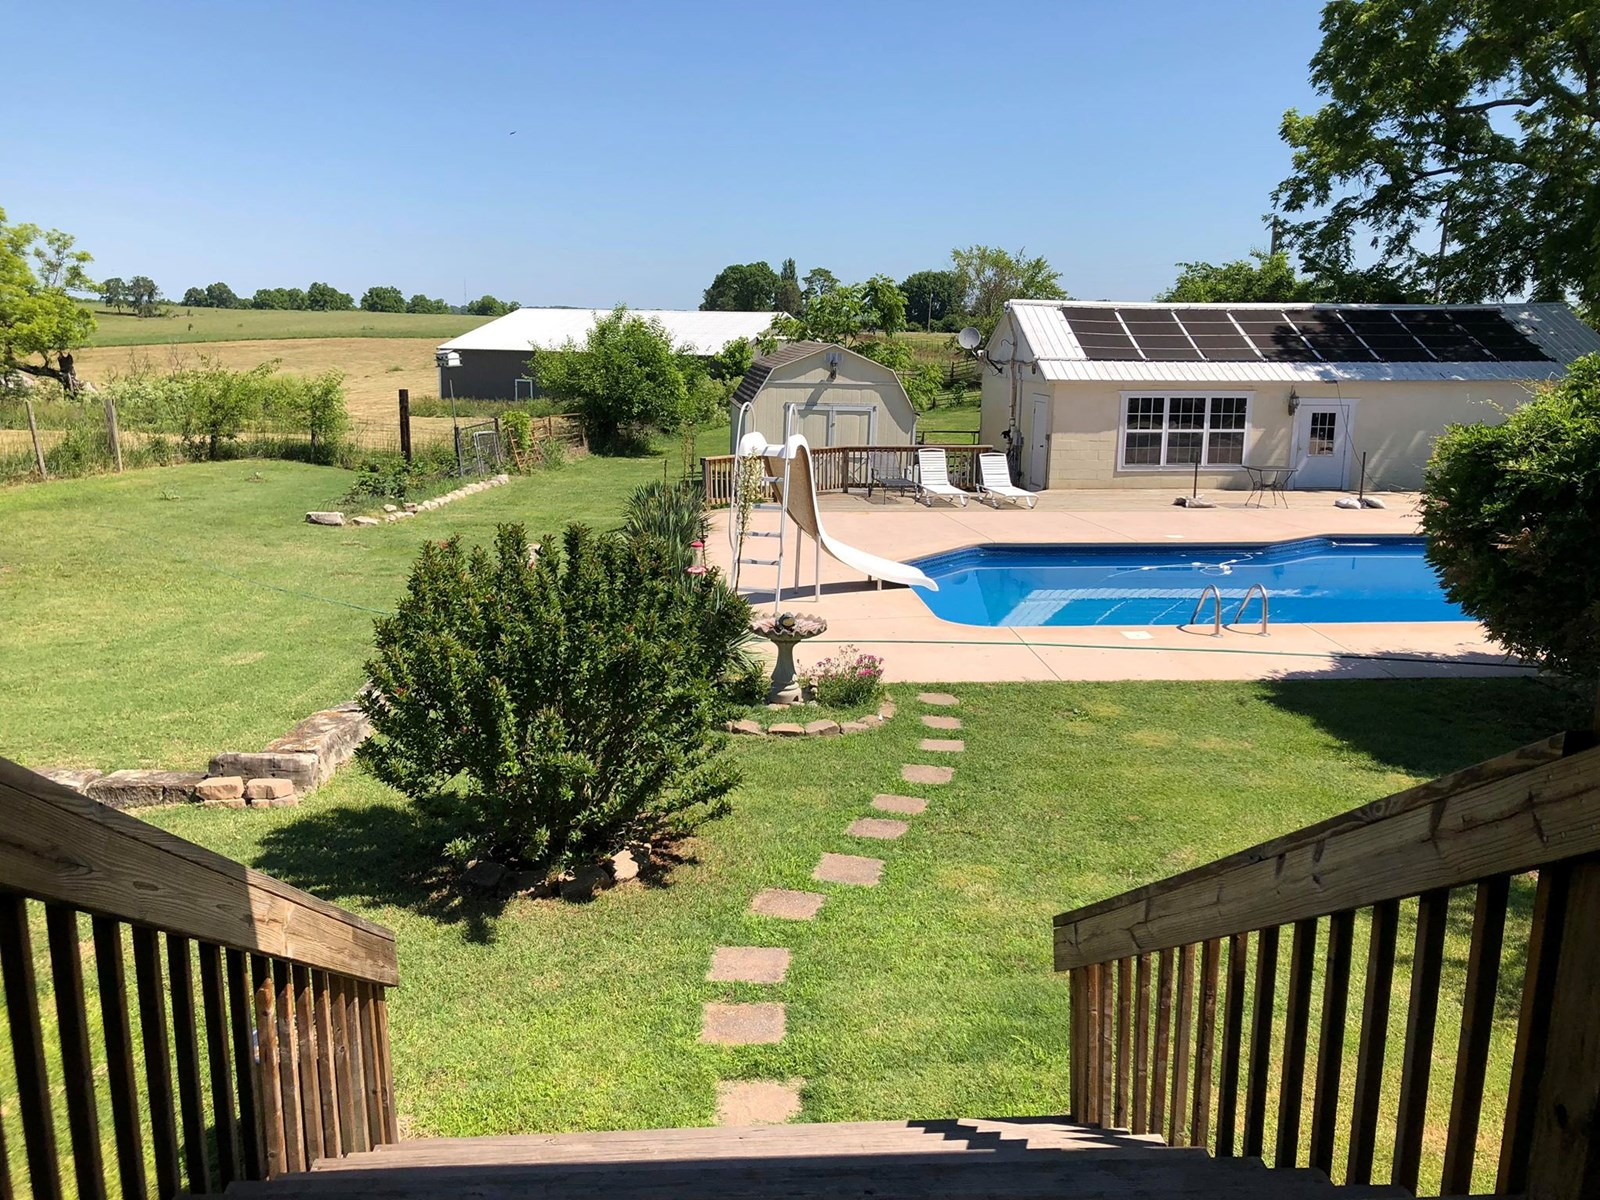 Large home, with pool and land for sale. Ava Mo